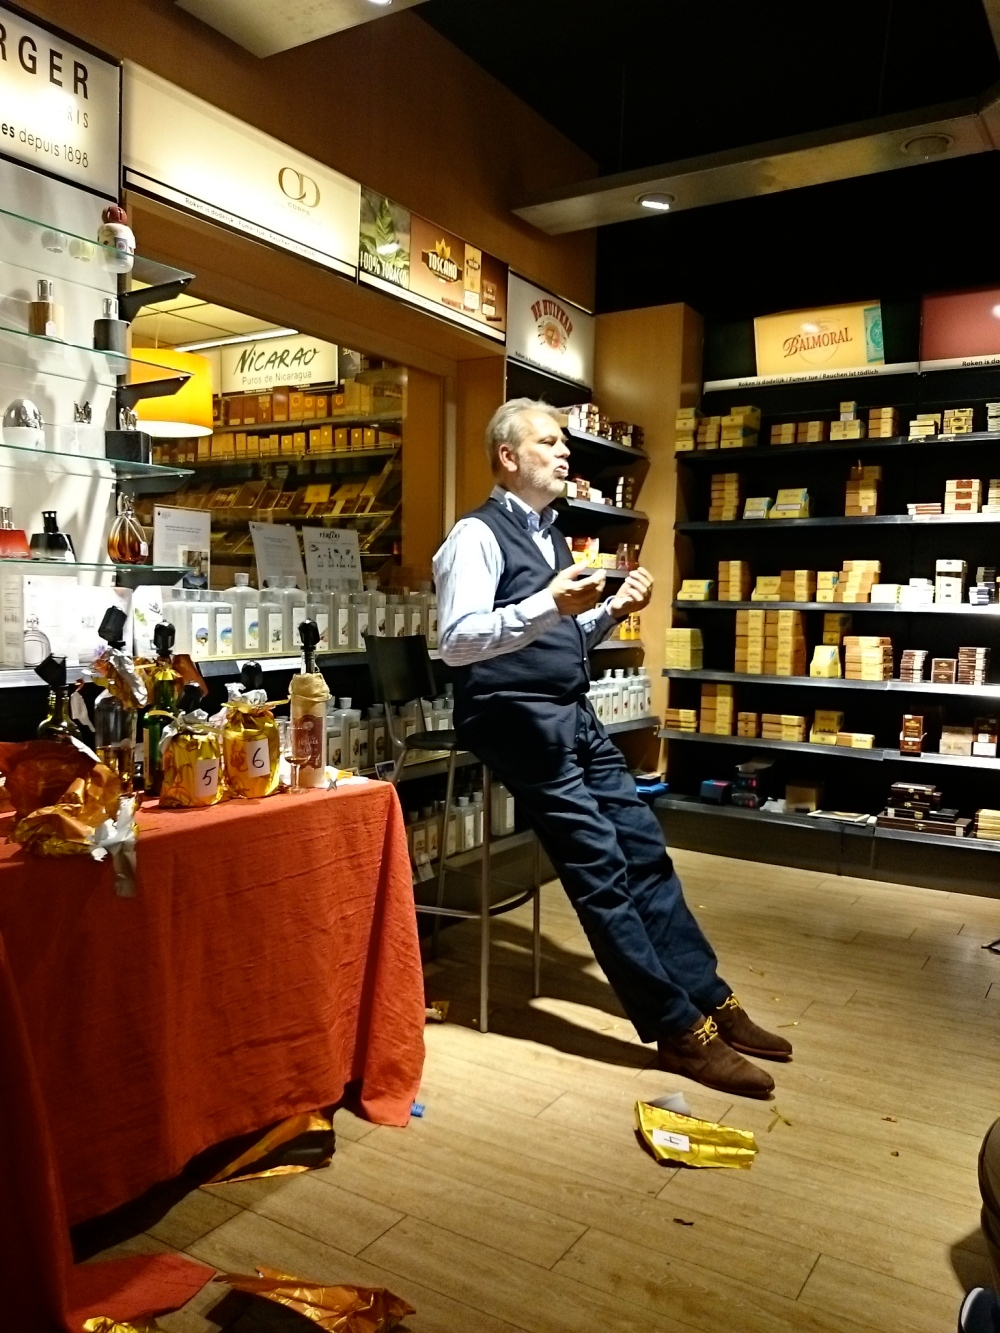 Frank Evens explaining about spirits